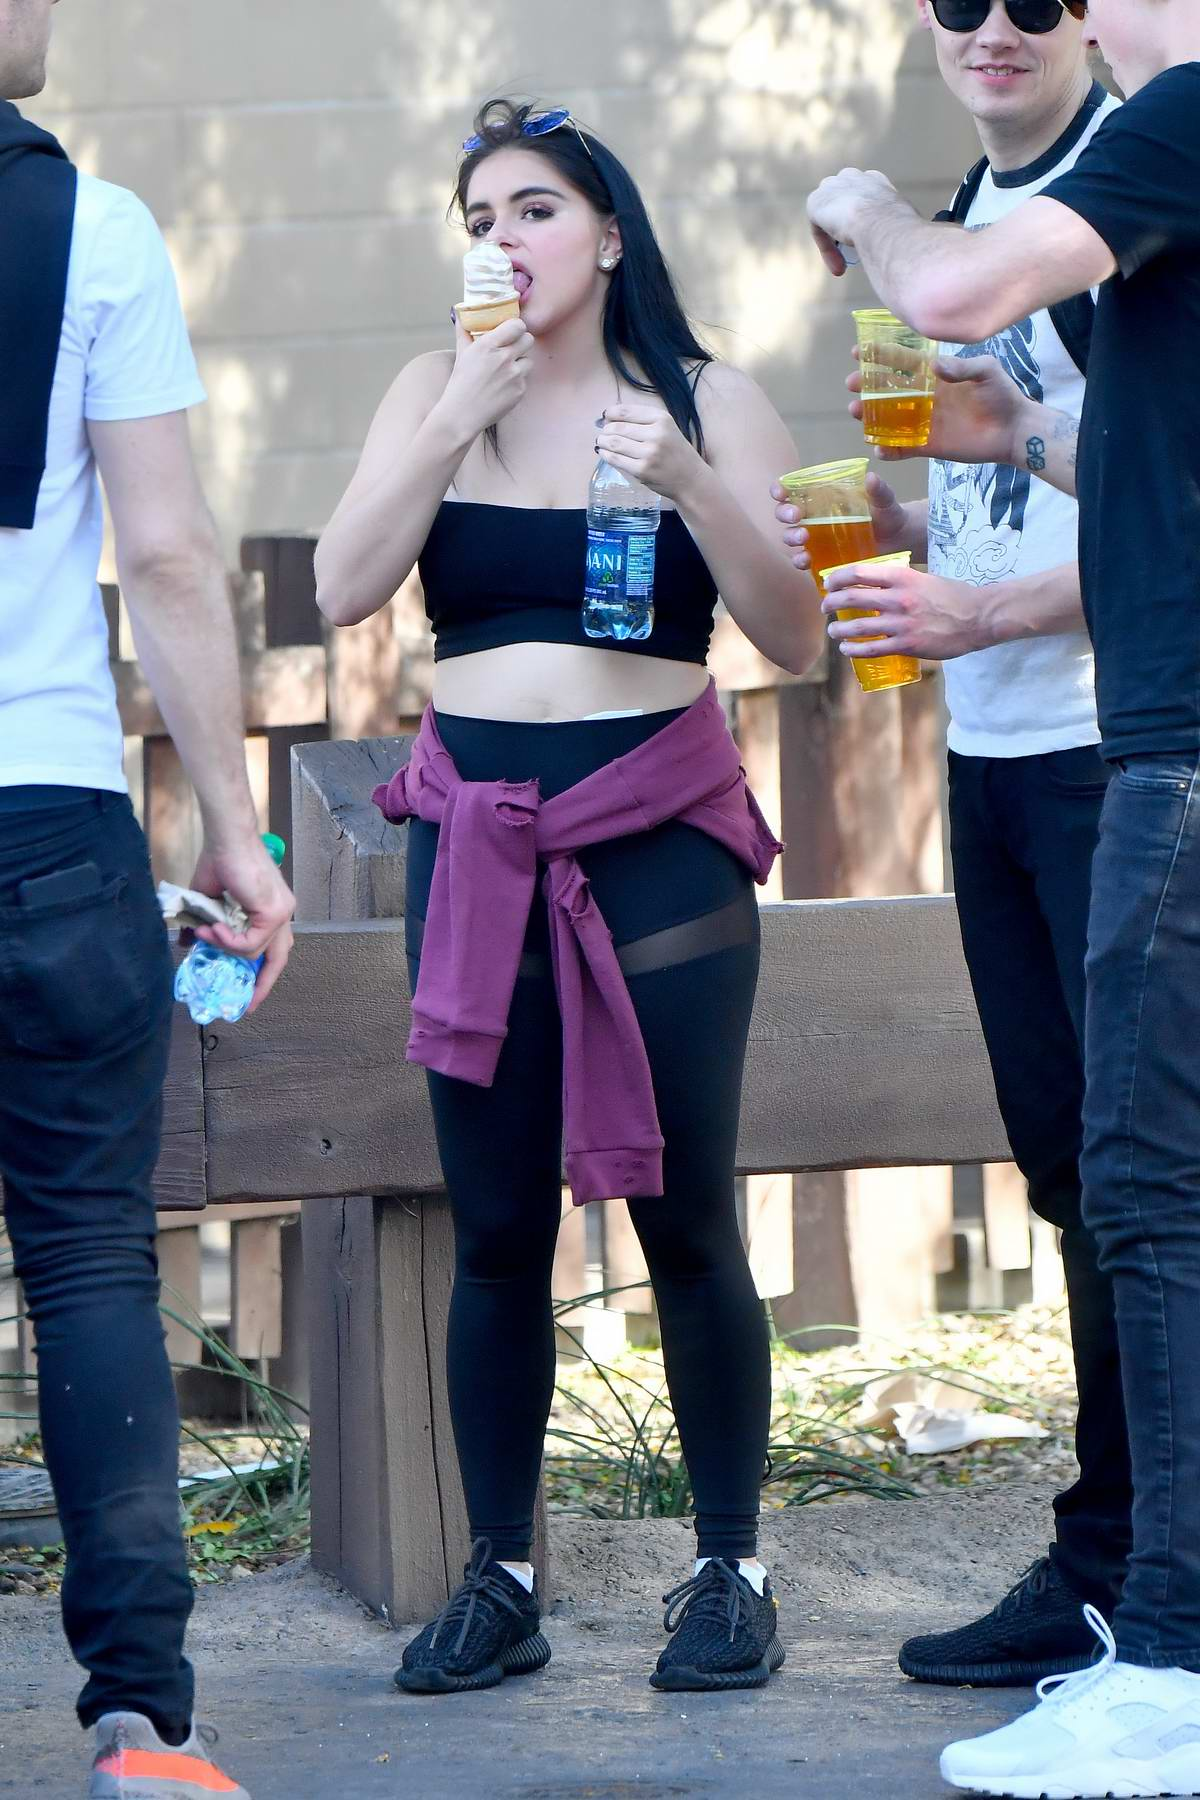 Ariel Winter enjoys a day out with friends at Disneyland in Anaheim, California